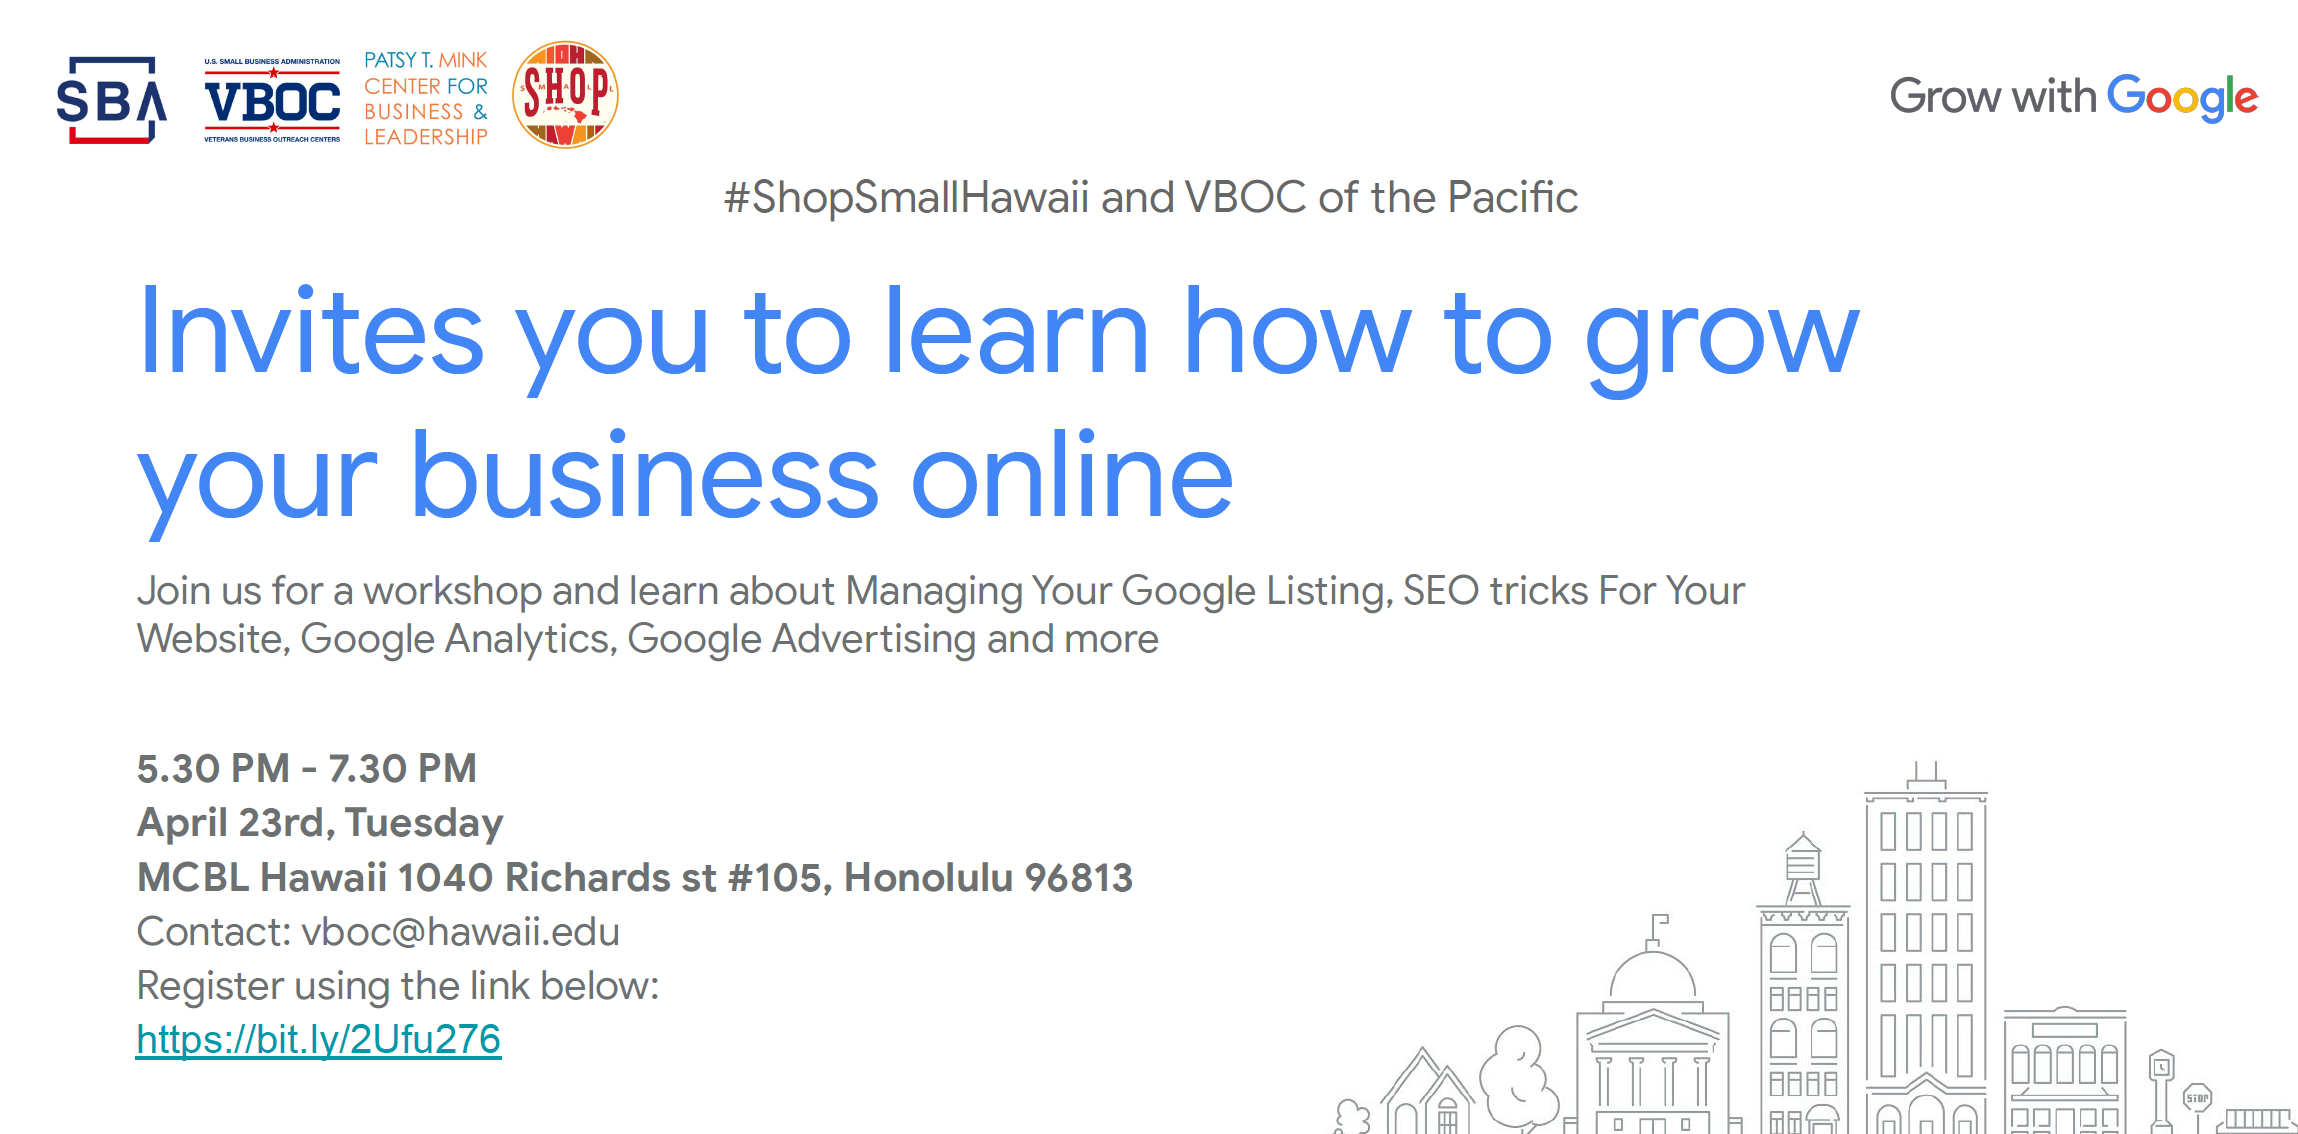 Google Workshop Oahu 2 flyer march 27 image.png